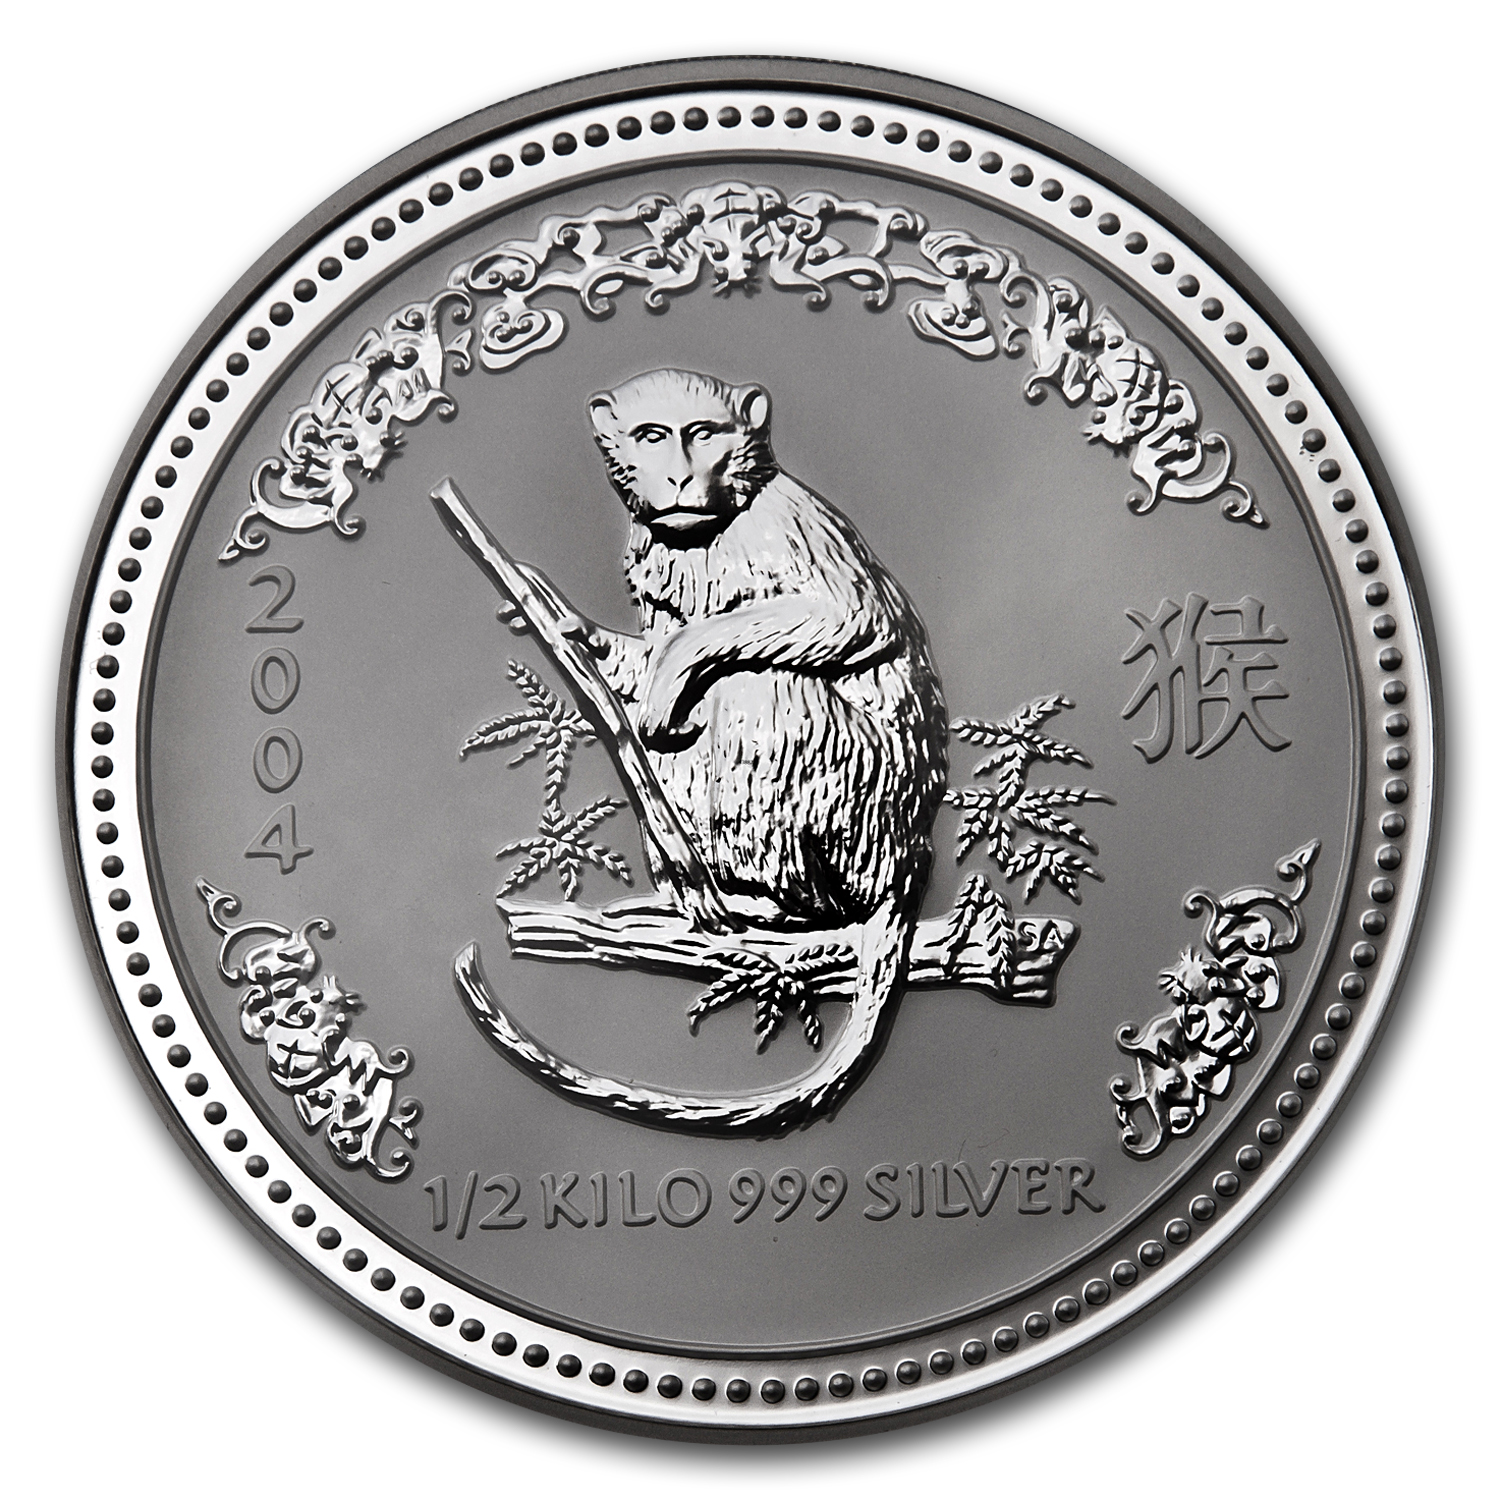 2004 1/2 Kilo Silver Australian Year of the Monkey MS-69 NGC